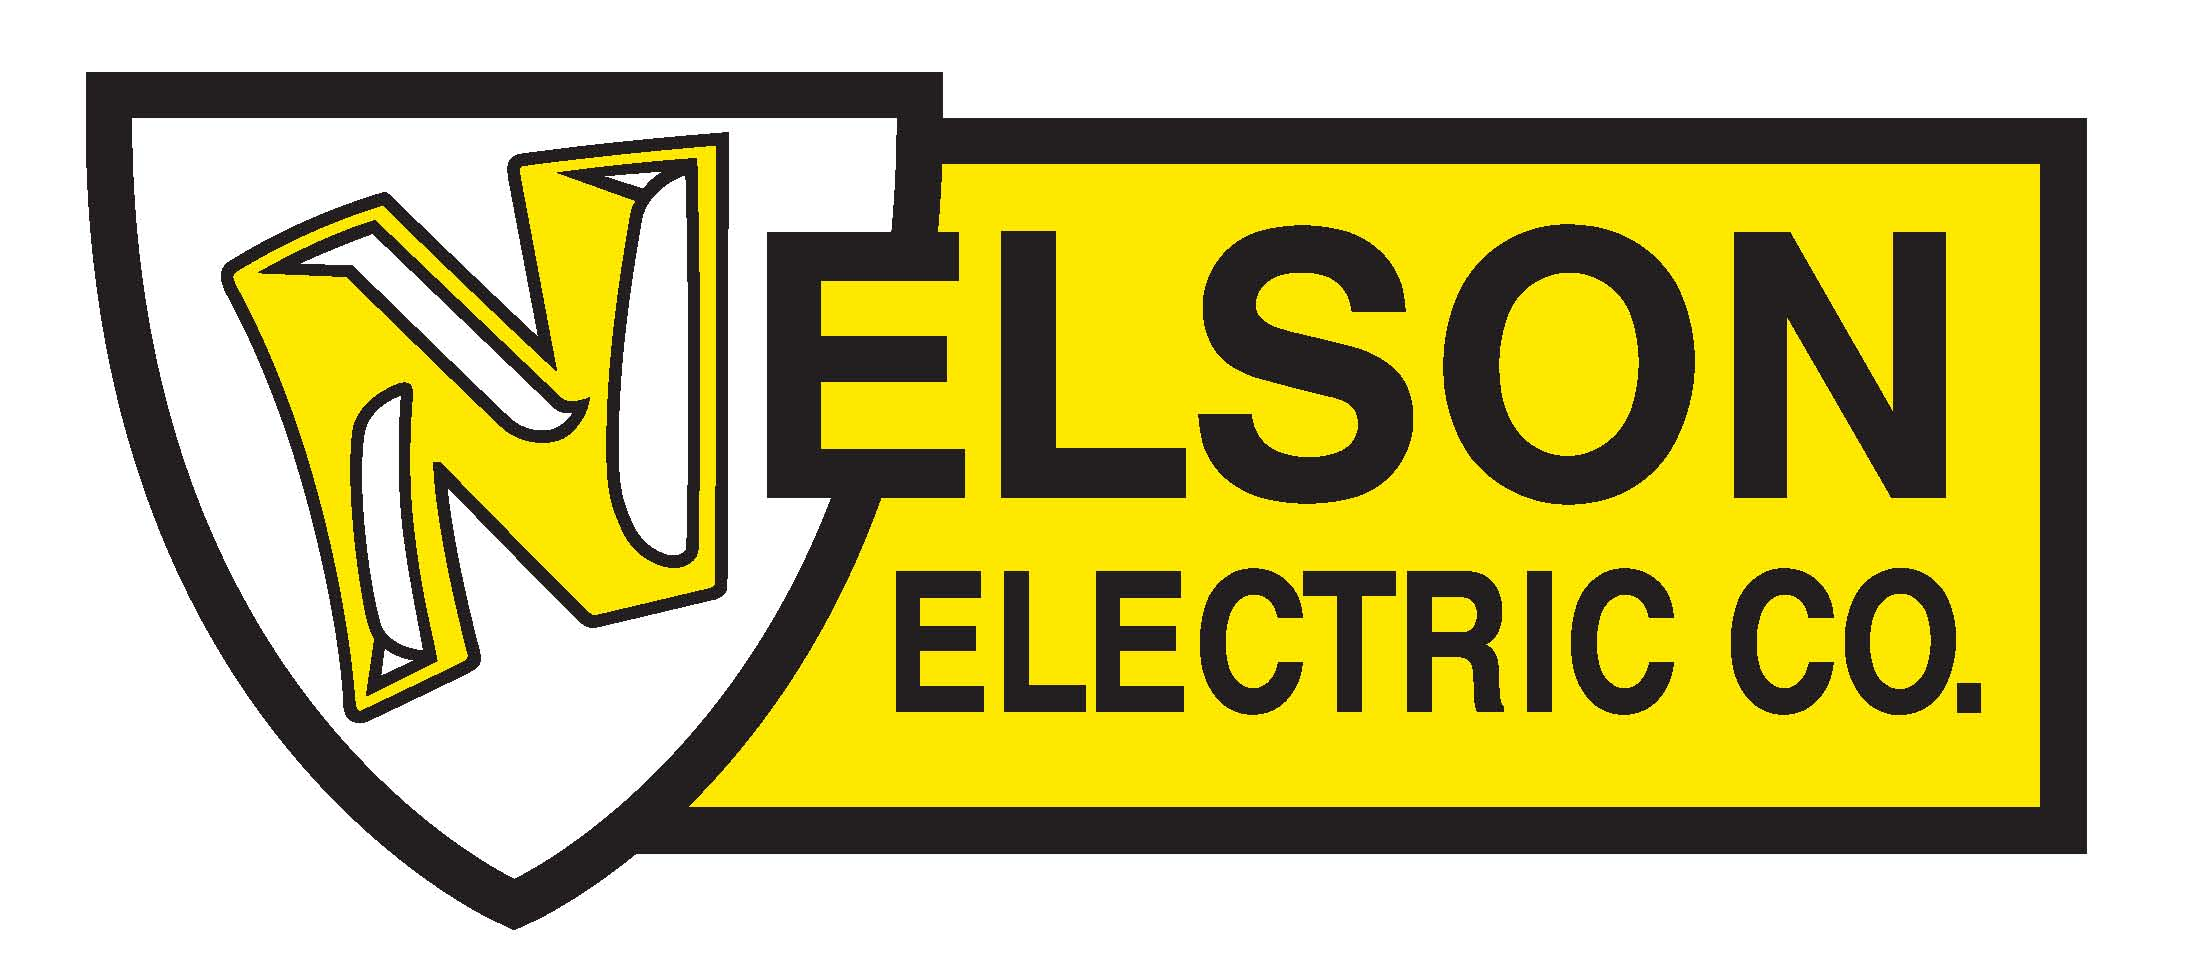 Nelson Electric Co